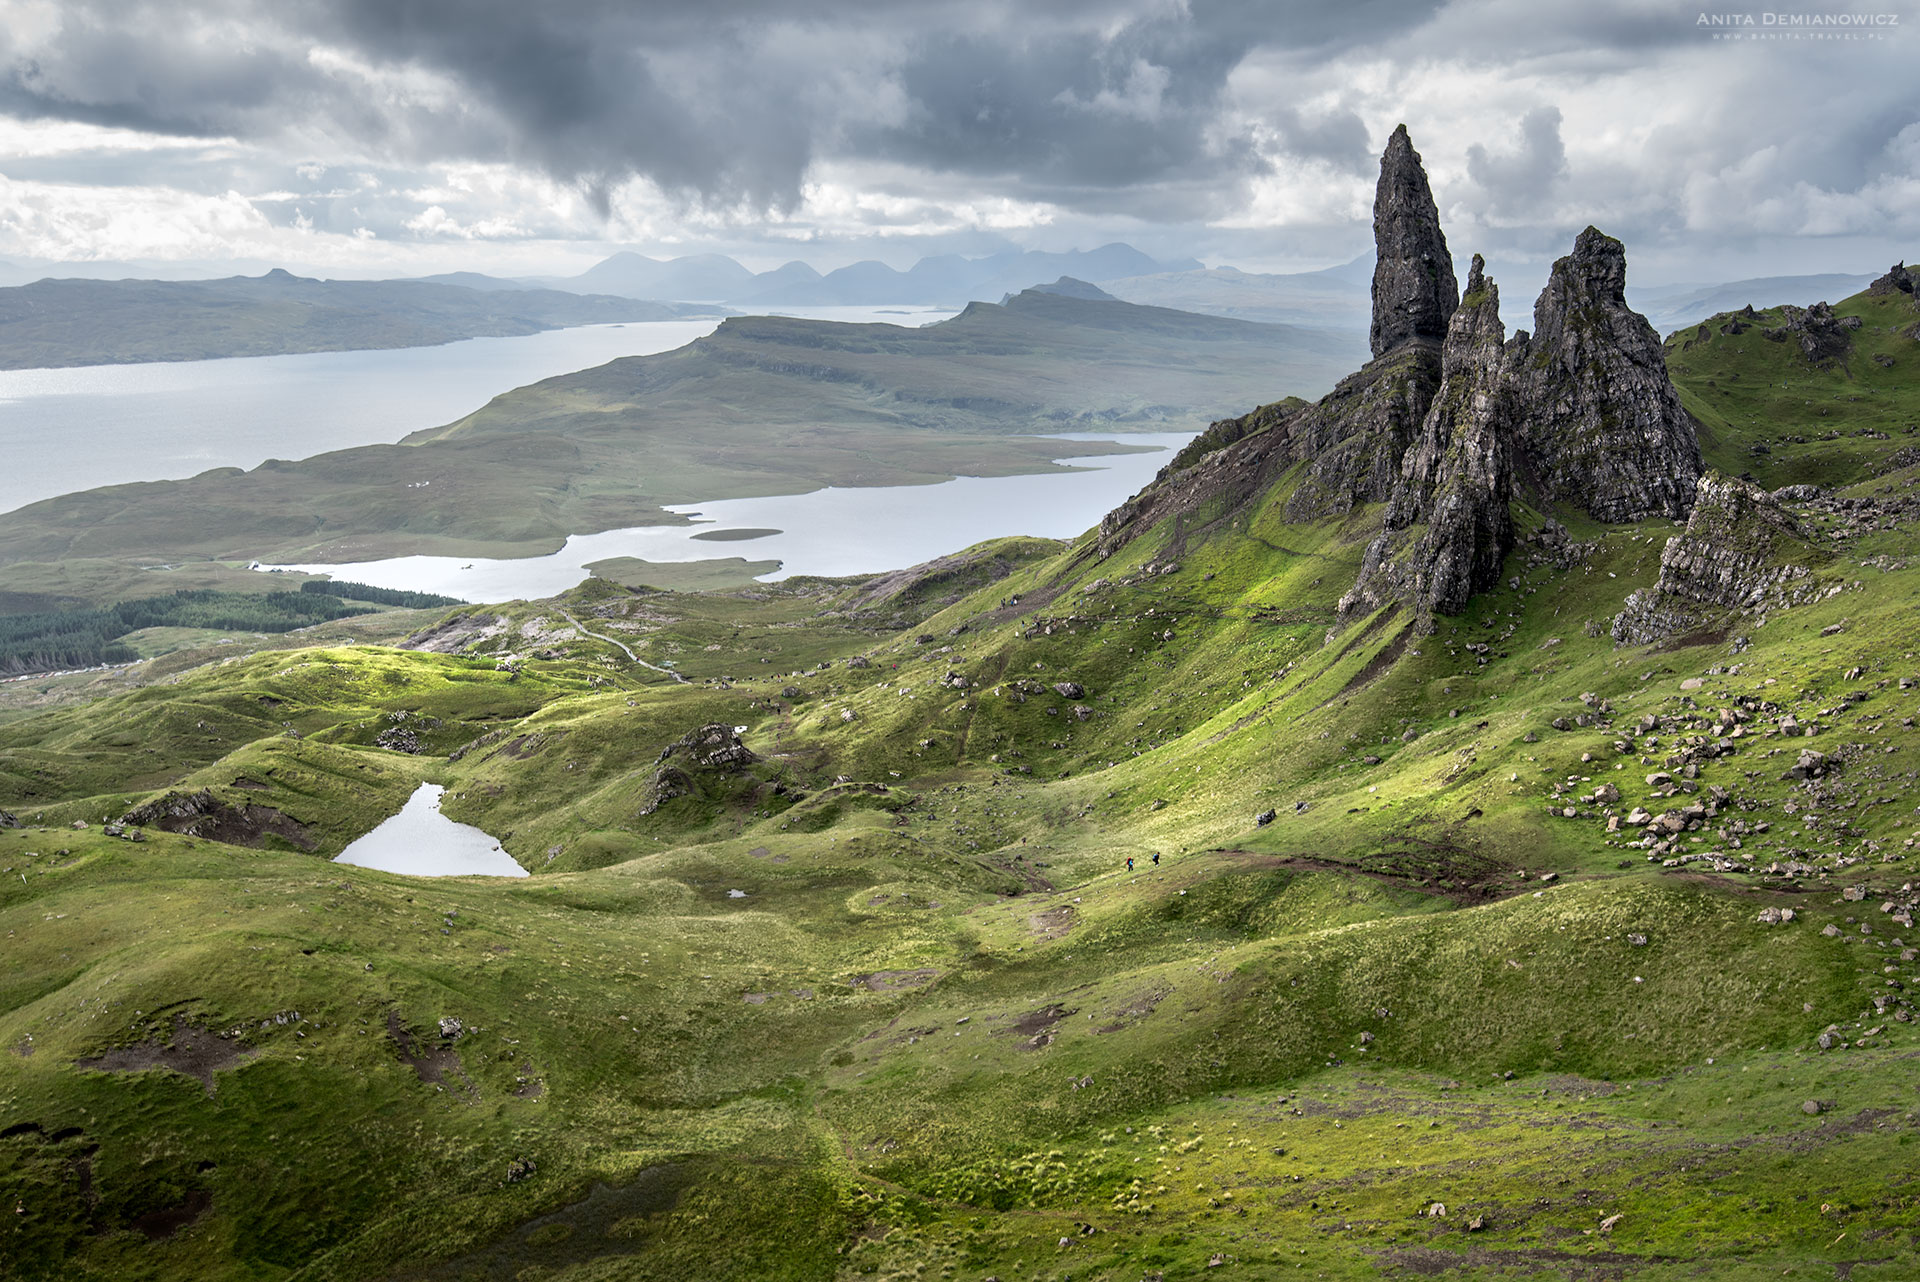 Old-Man-of-Storr, Szkocja, Isle of Skye